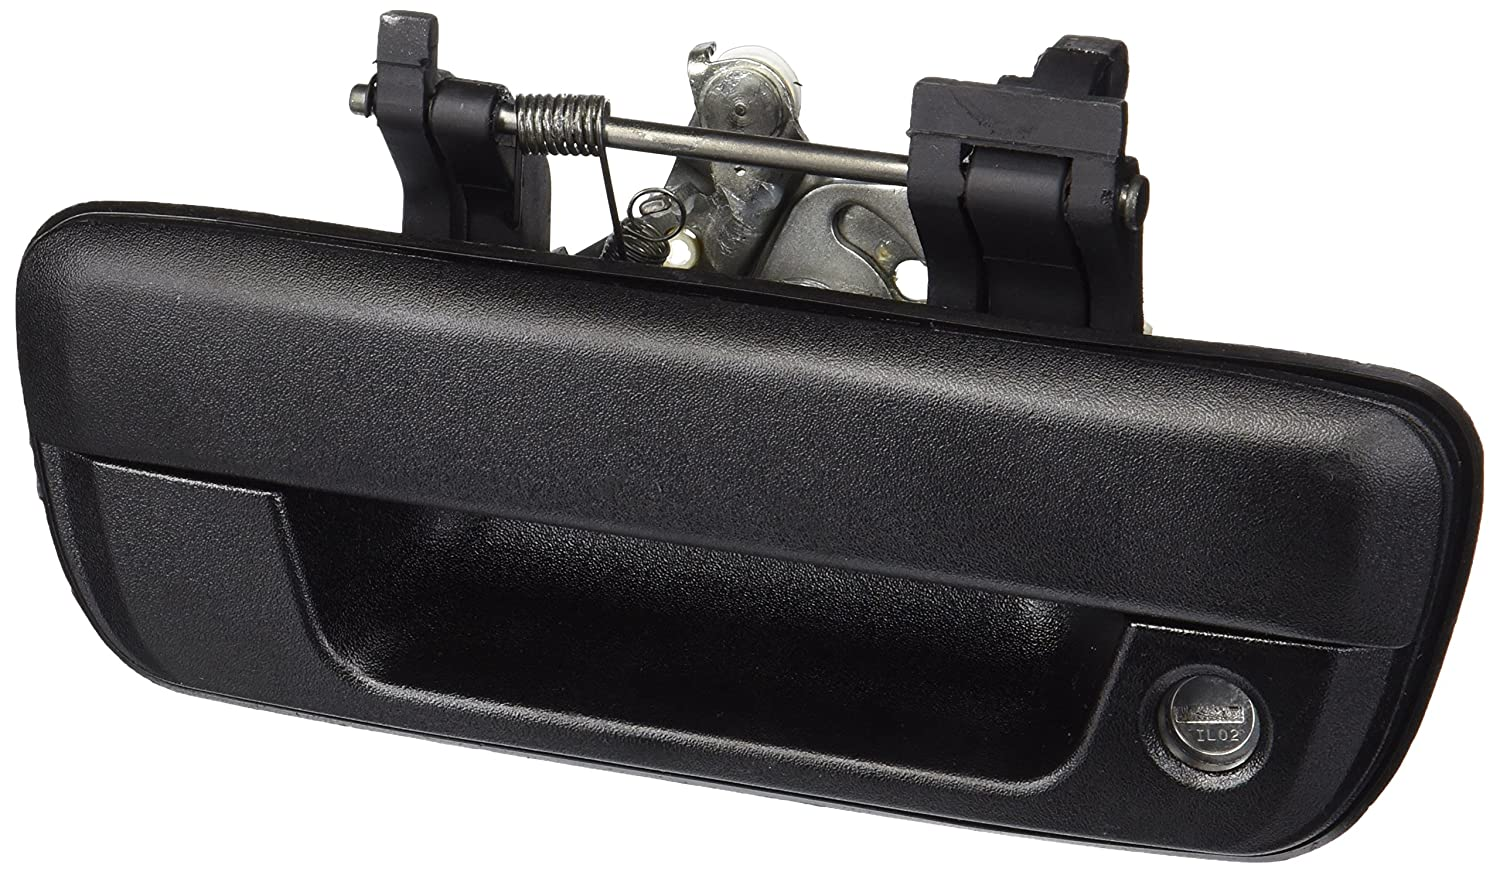 Pop & Lock PL1700 Tailgate Lock for Chevy Colorado and GMC Canyon